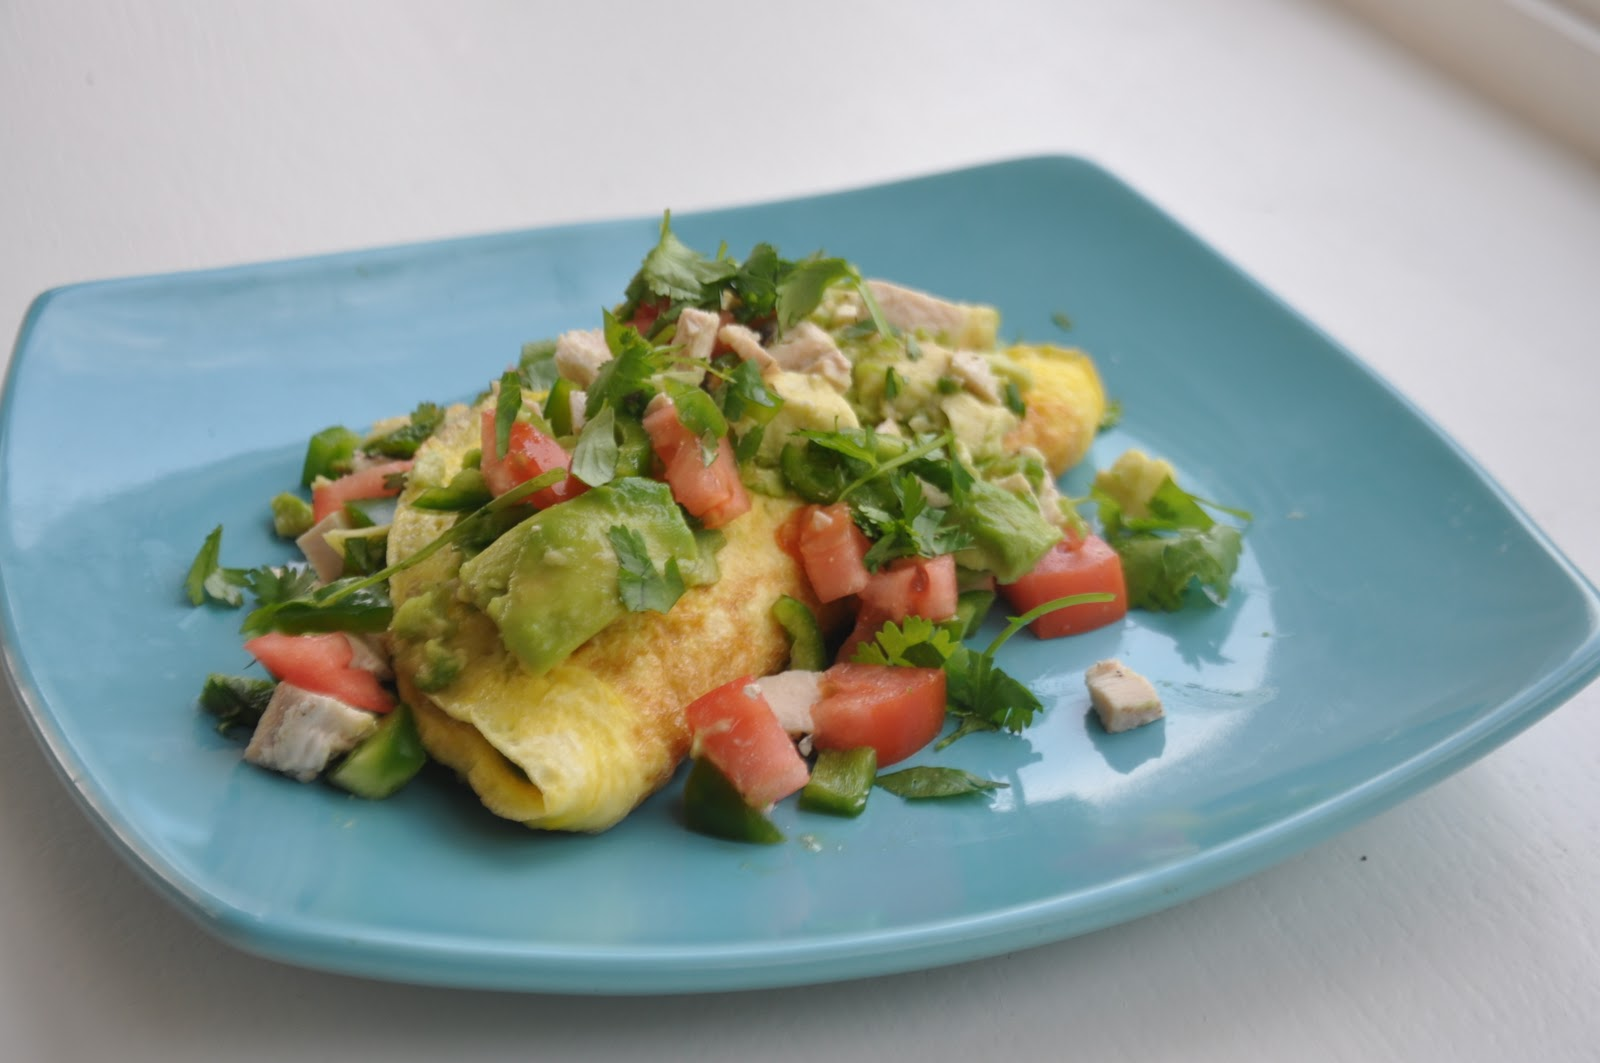 ... Midland Chiropractor | Saginaw Chiropractor: Recipe: Mexican Omelette